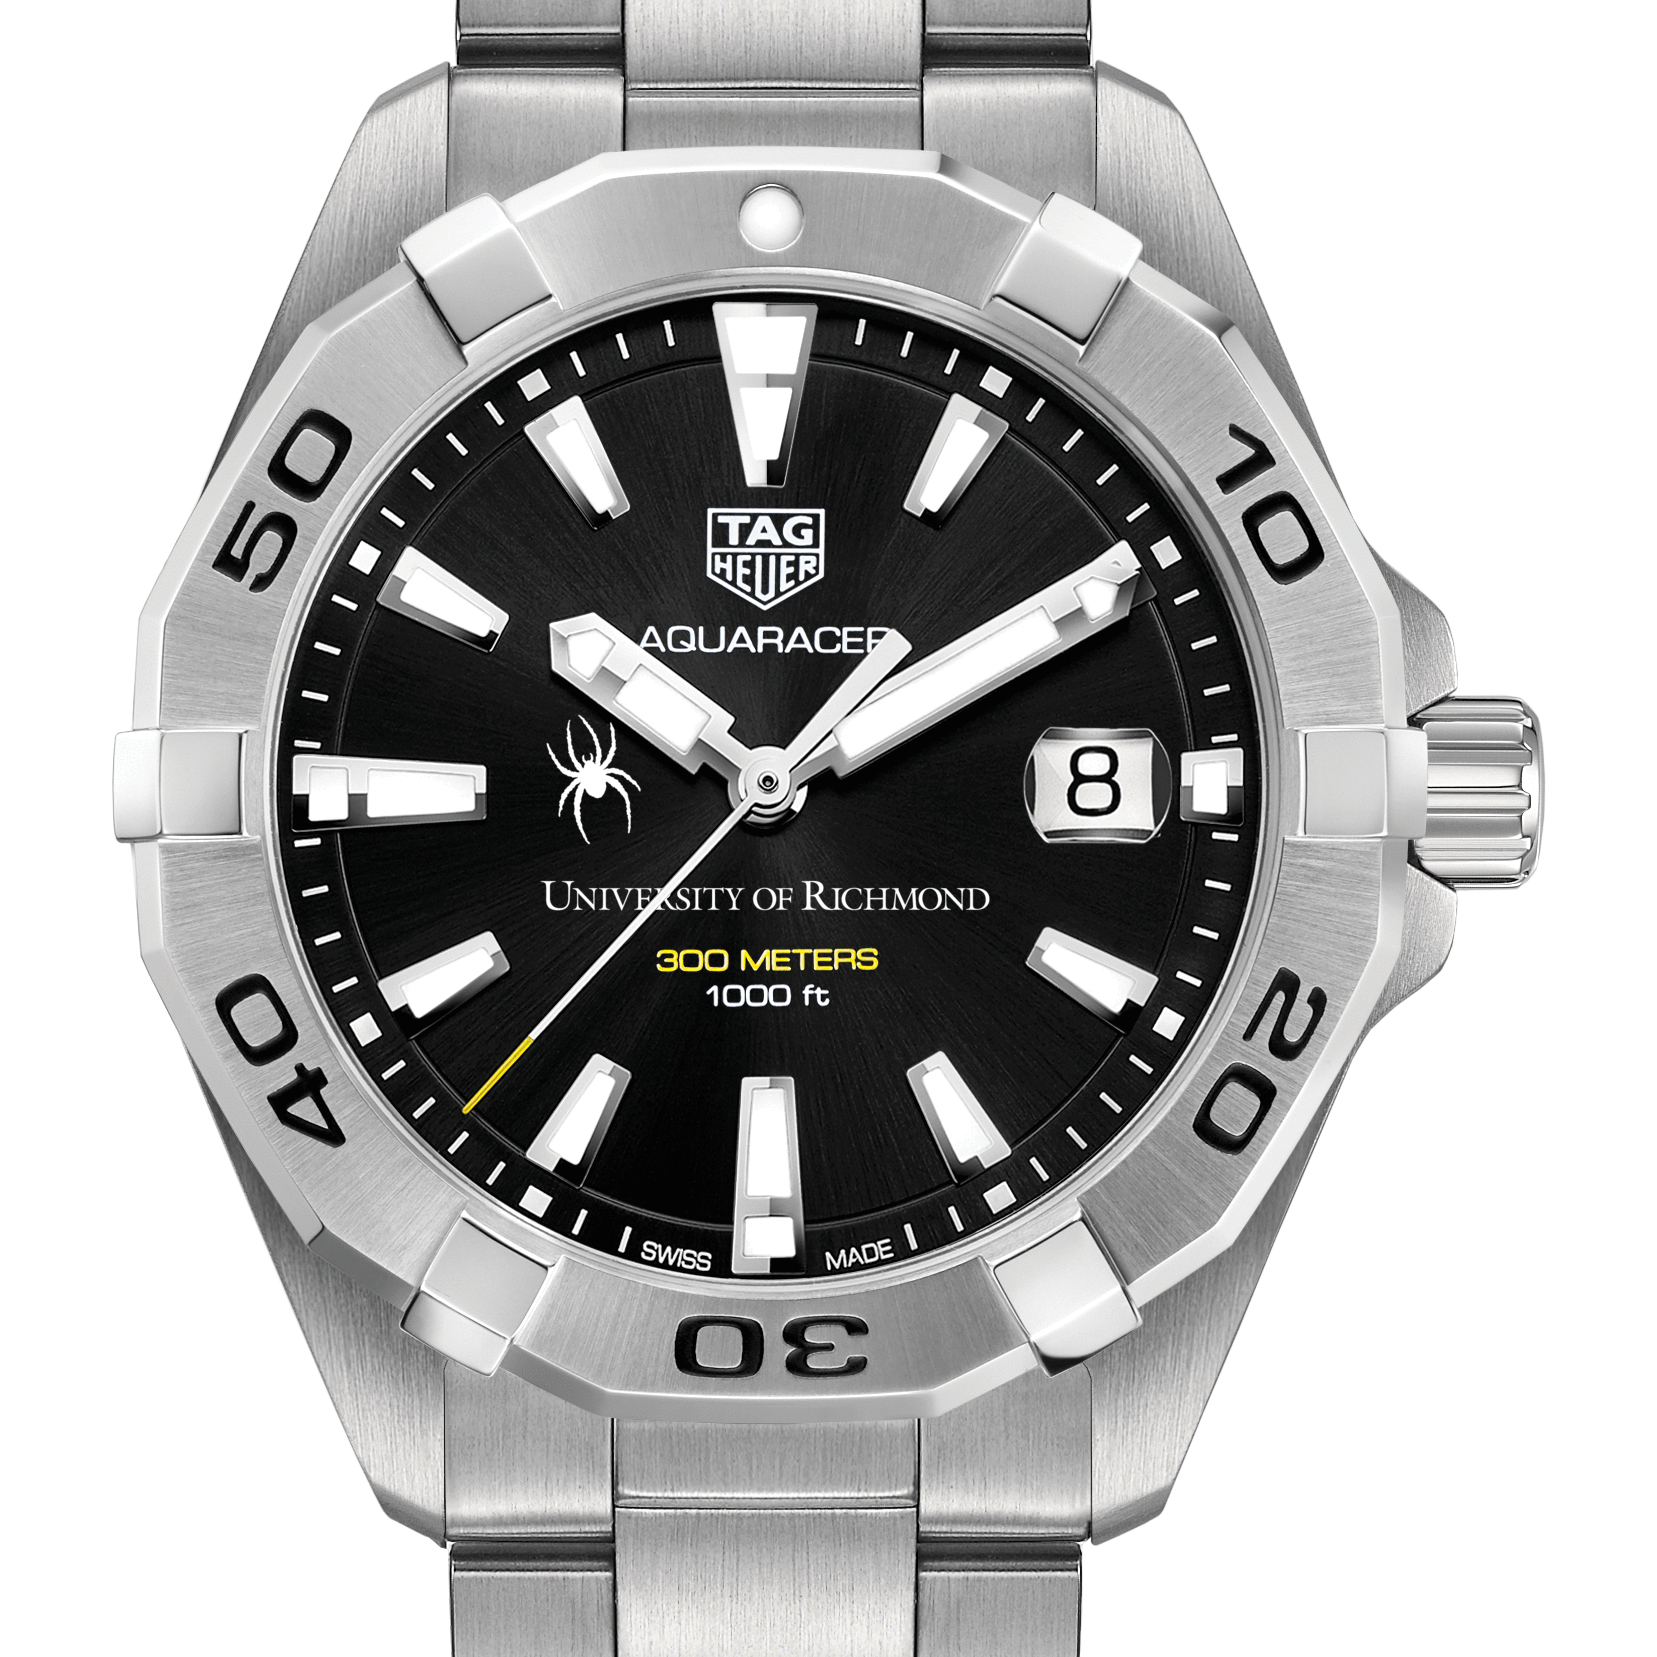 University of Richmond Men's TAG Heuer Steel Aquaracer with Black Dial